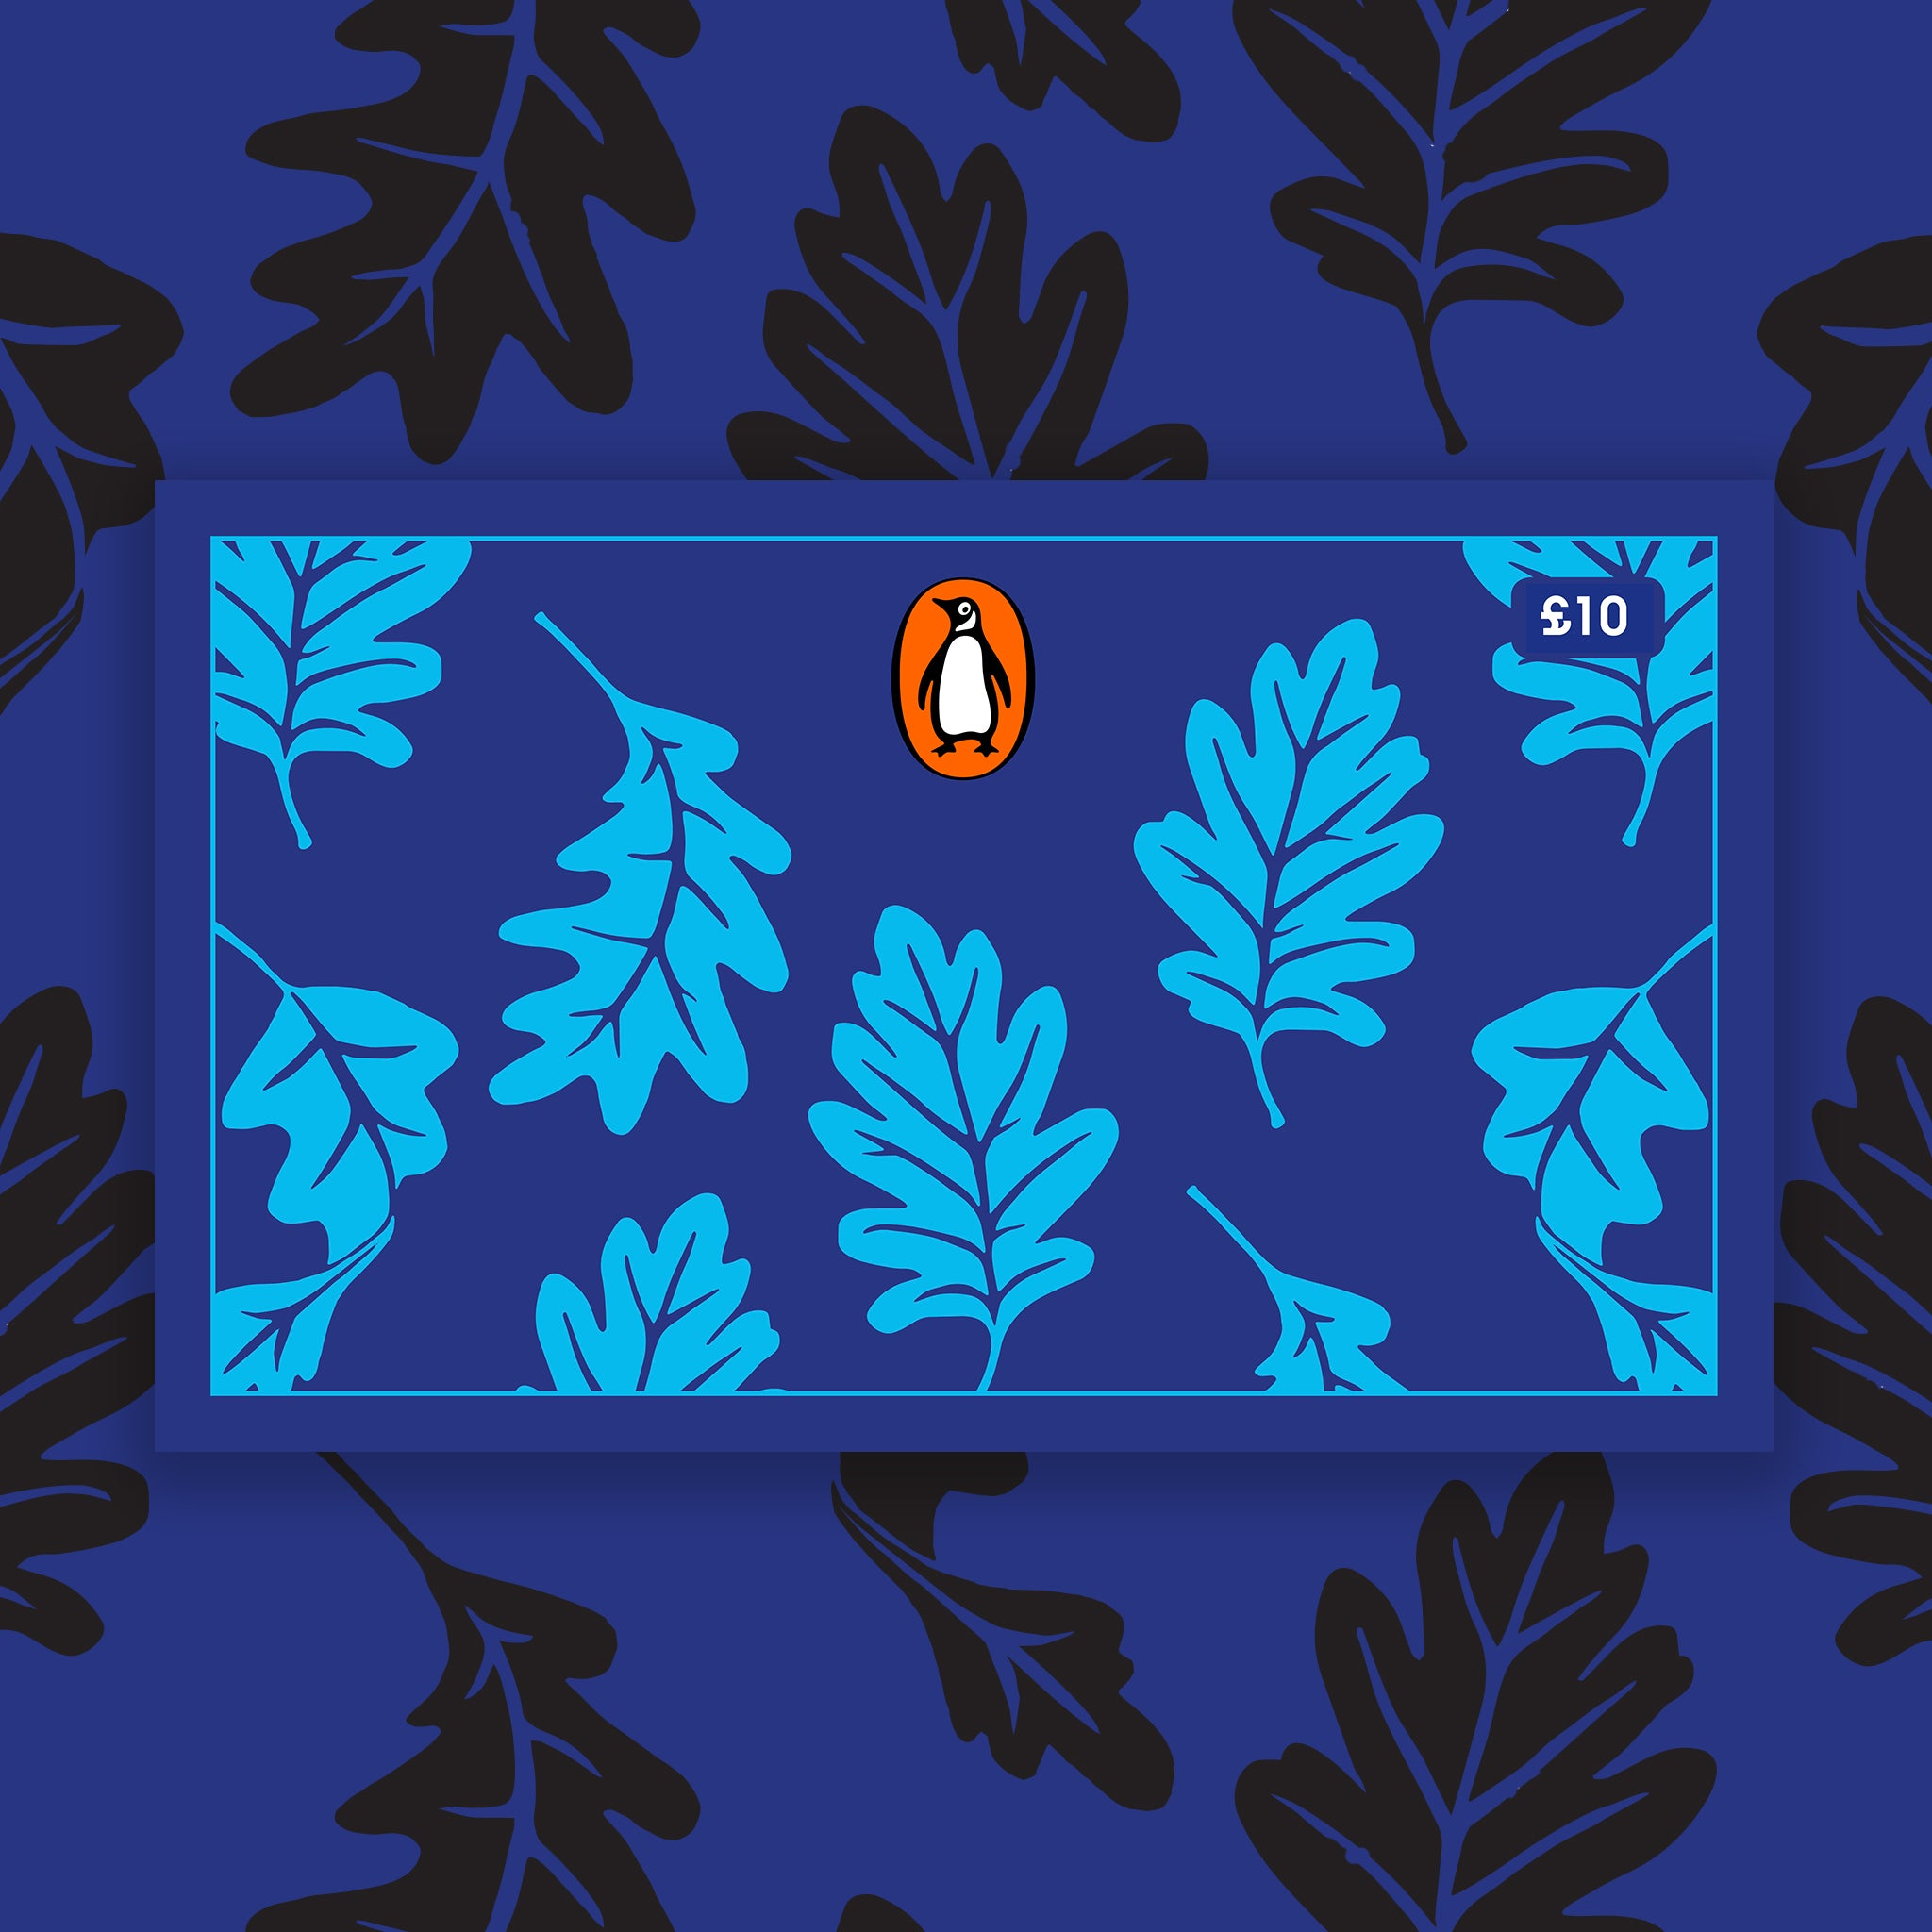 Penguin Shop Gift Card